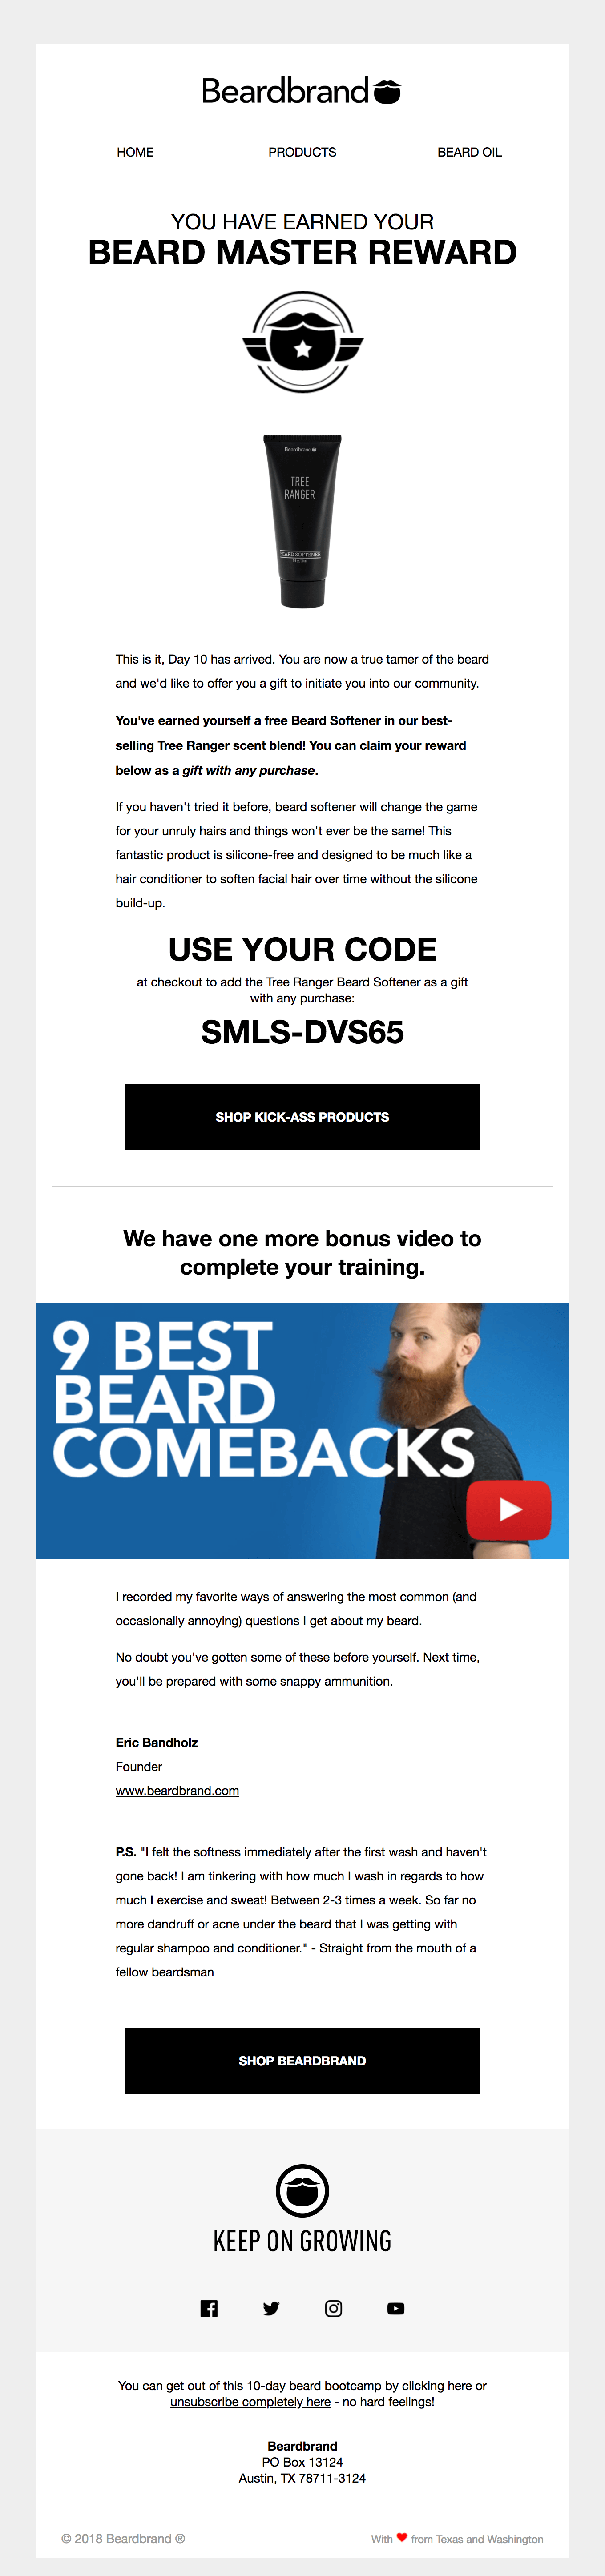 An example of an email that uses humor with icons